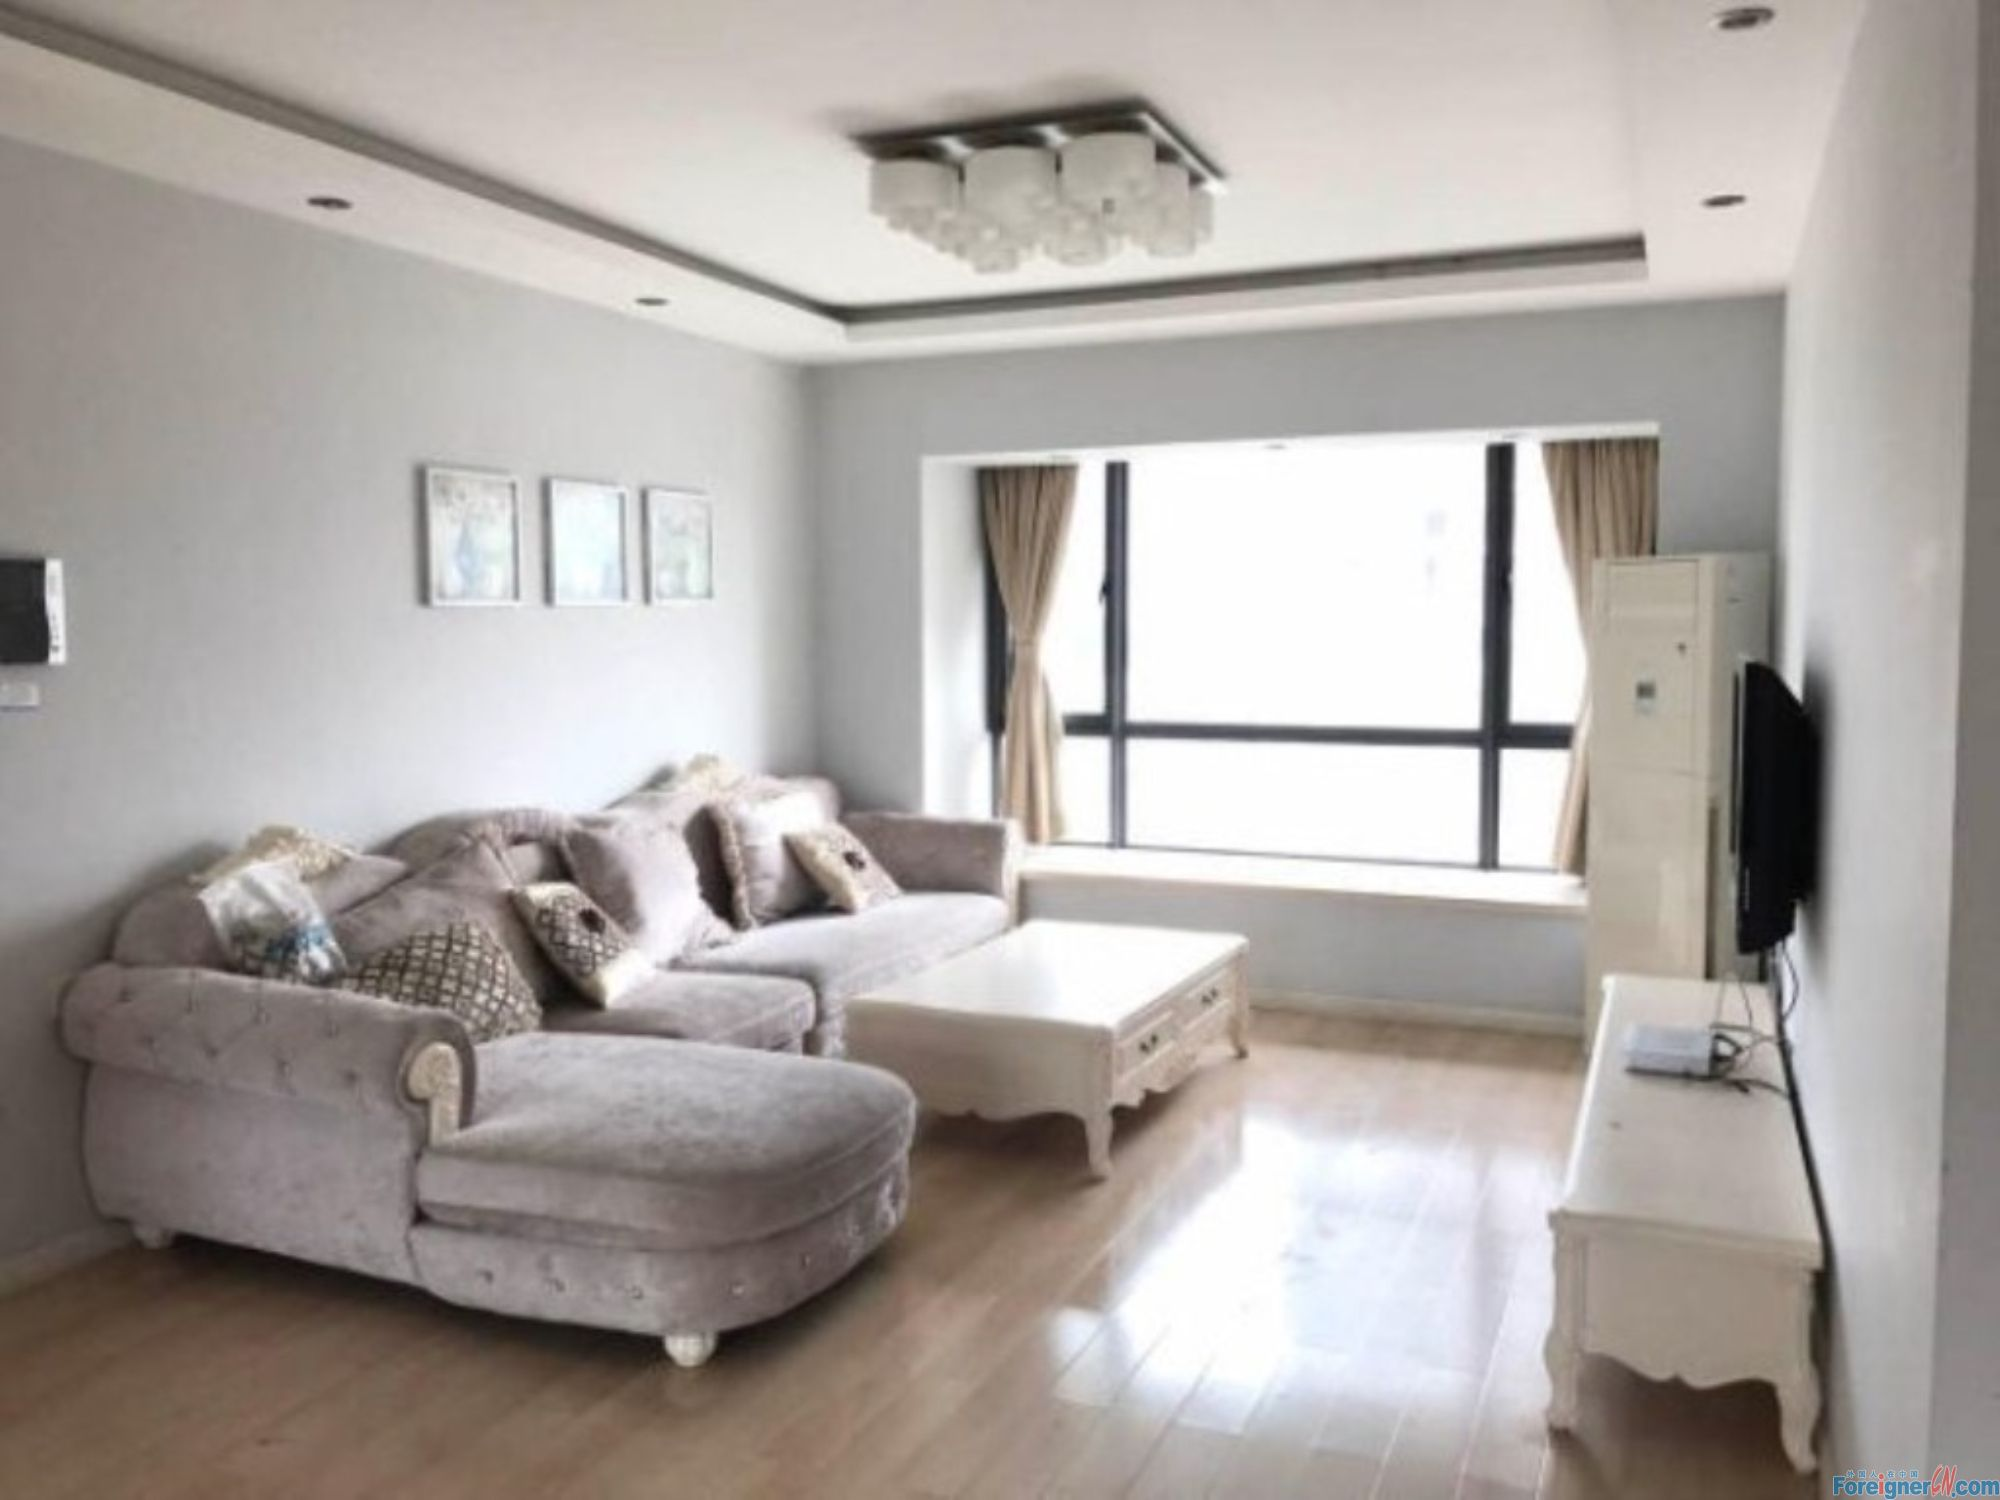 Amazing! Galaxy center-Times Square-2 bedrooms-underfloor heating-lake view-convenient traffic